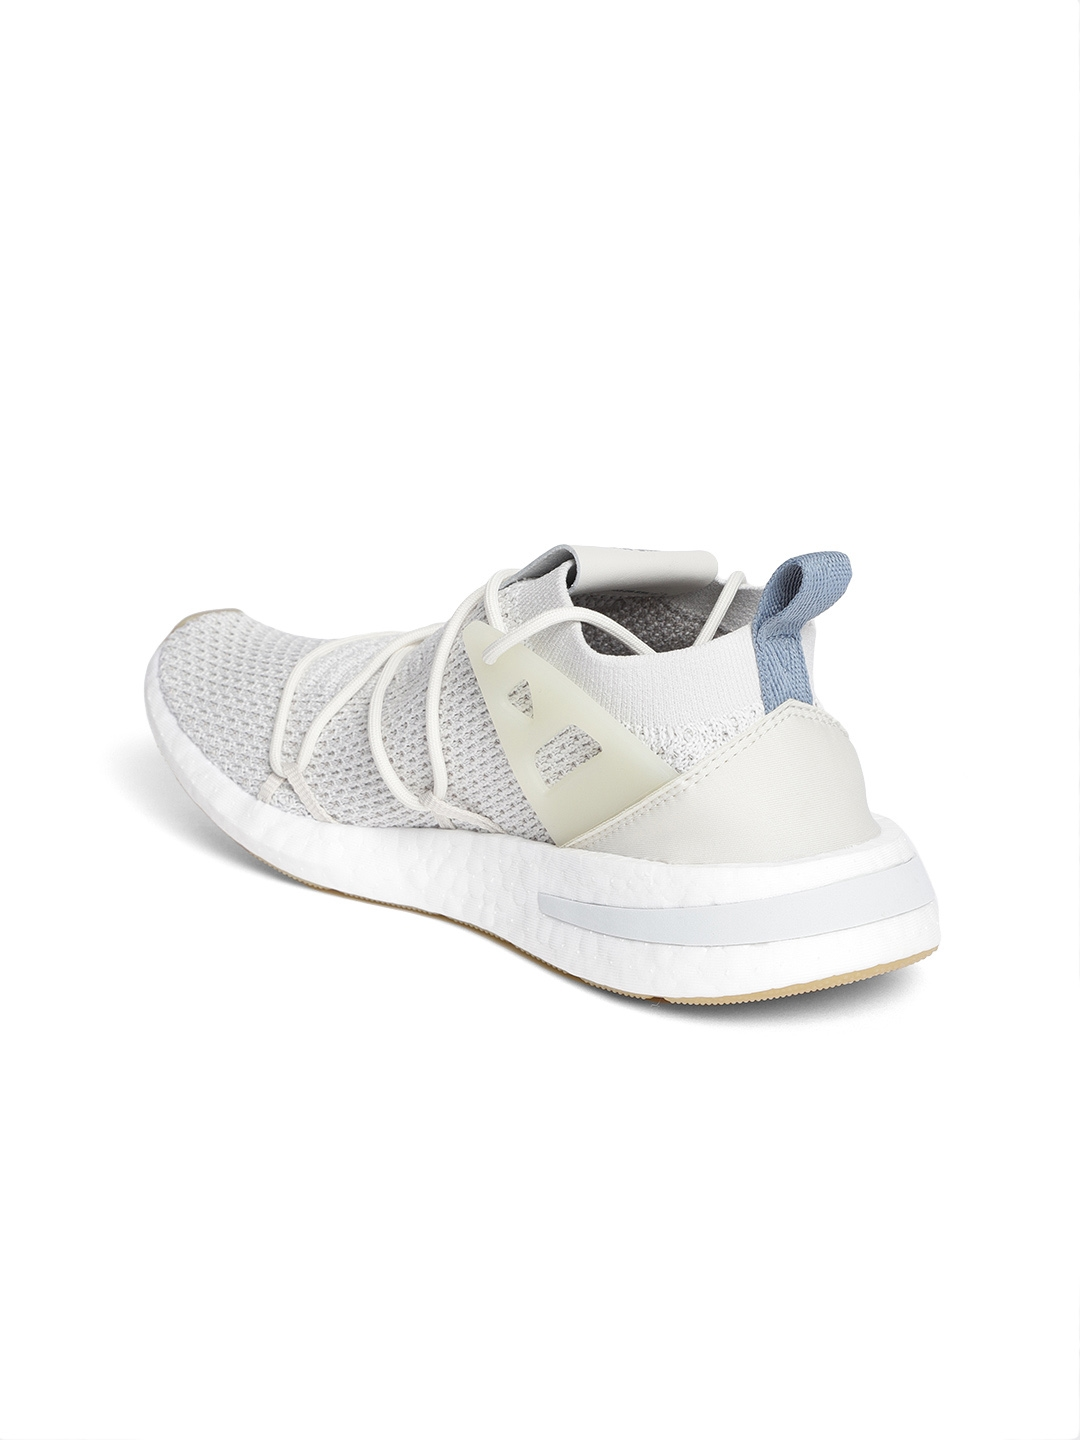 b80993dcab2 Buy ADIDAS Originals Women Off White ARKYN Primeknit Sneakers ...